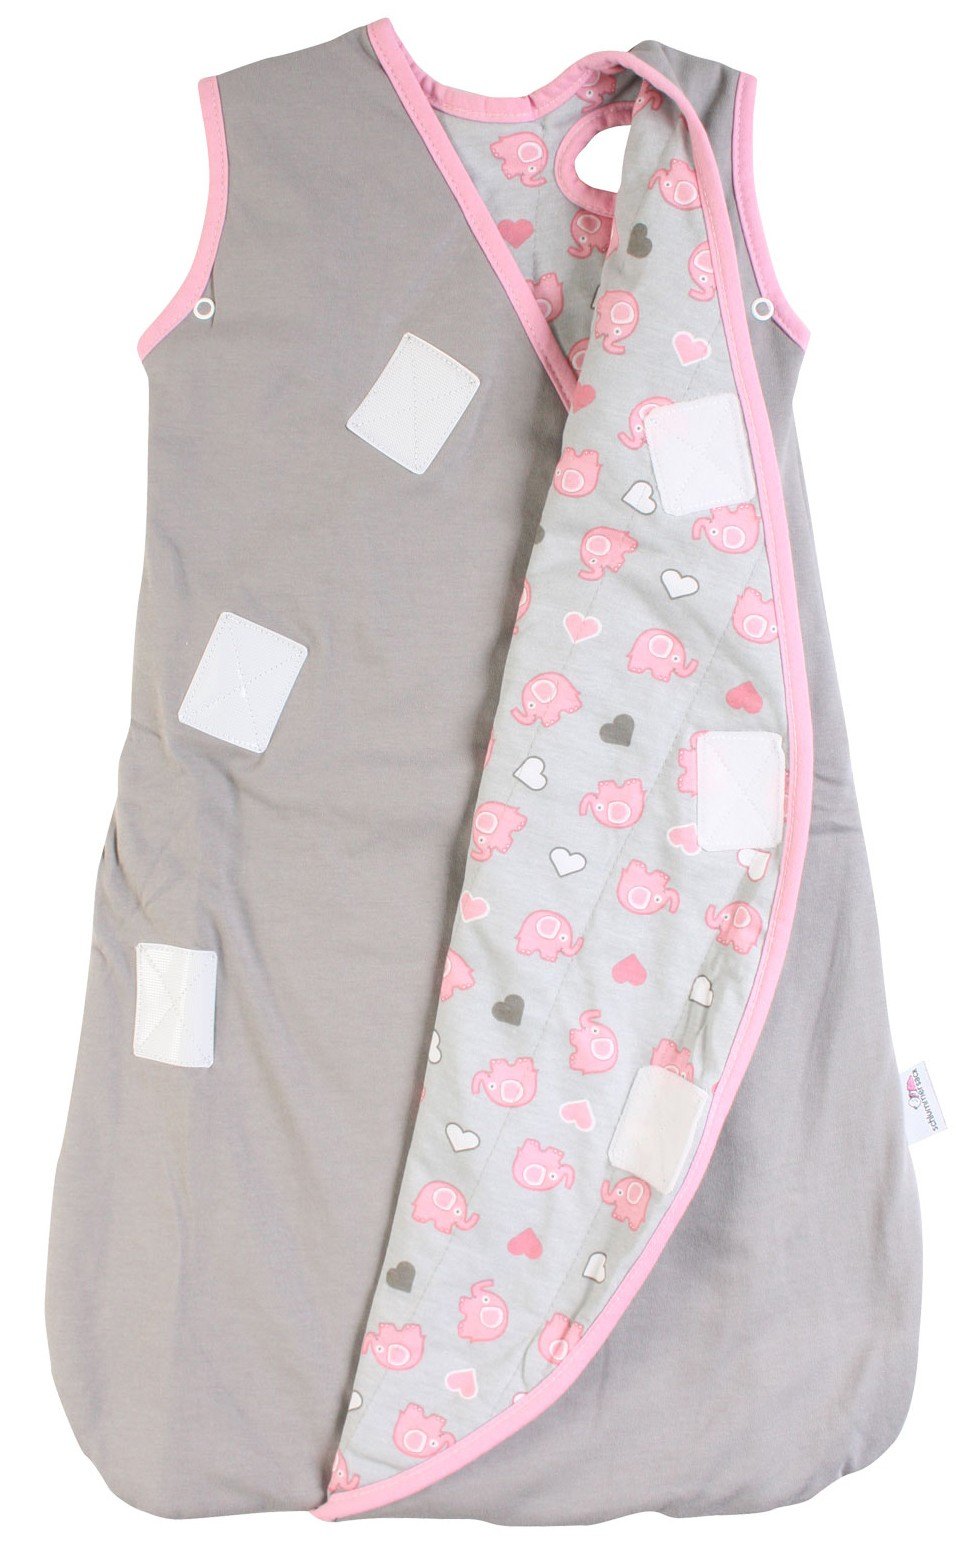 Sac de dormit multifunctional Grey Pink Elephant Travel 6-18 luni 2.5 Tog